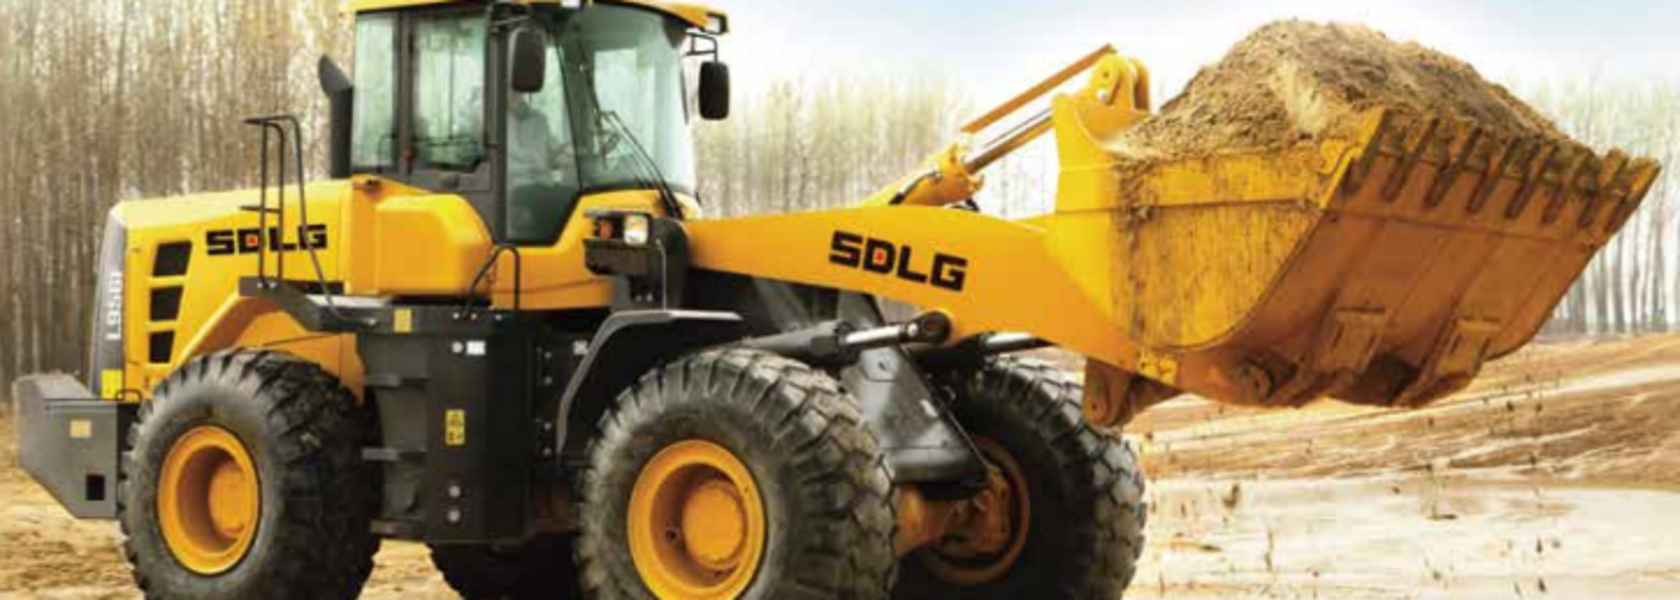 SDLG loaders aid in efficient cement construction from oil waste